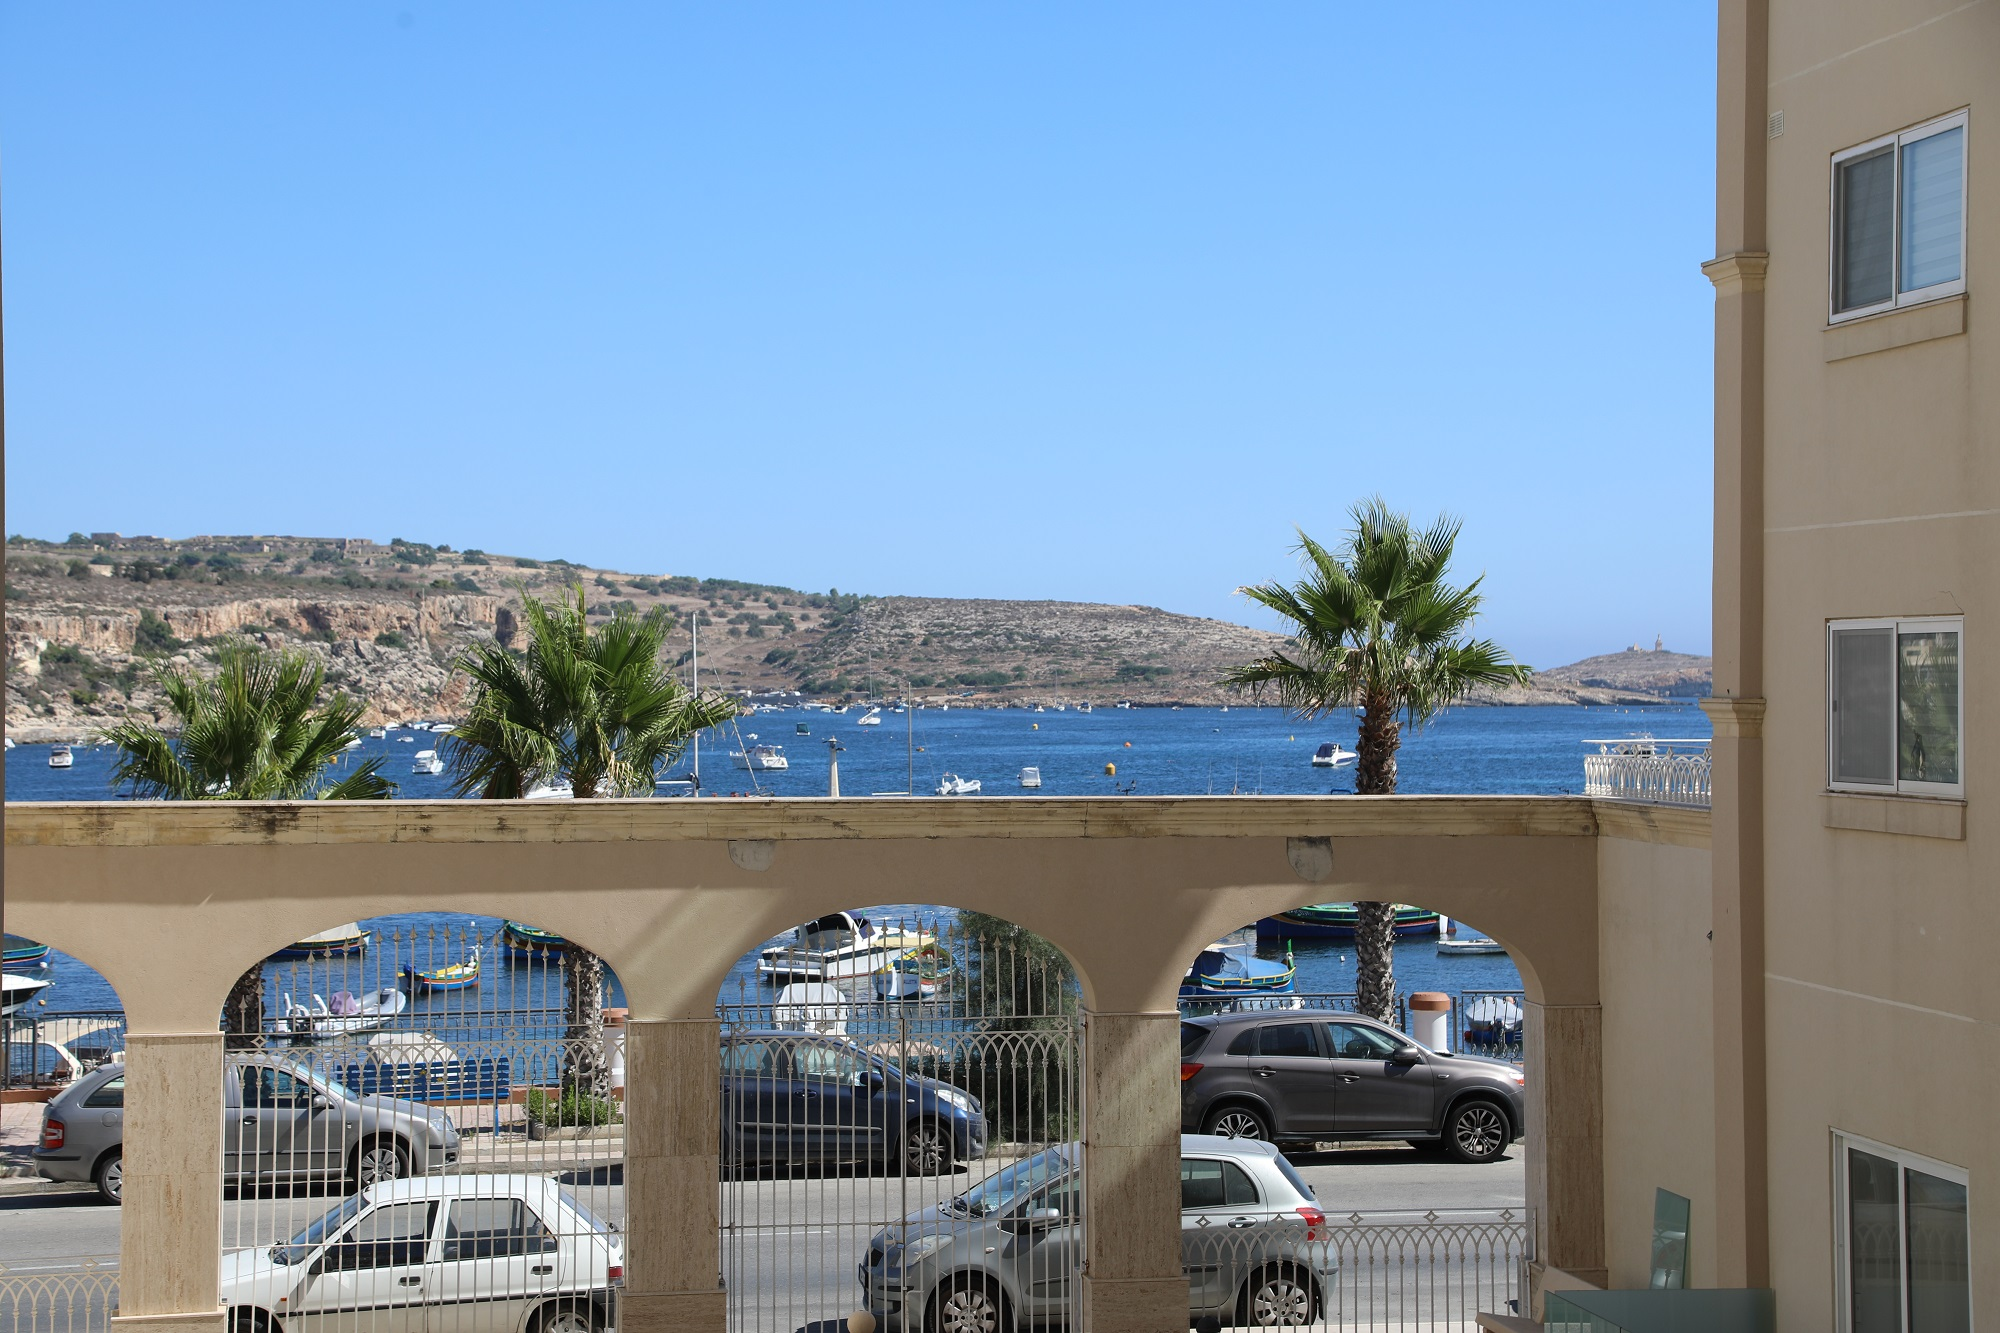 The view from the BELS superior residence in Malta